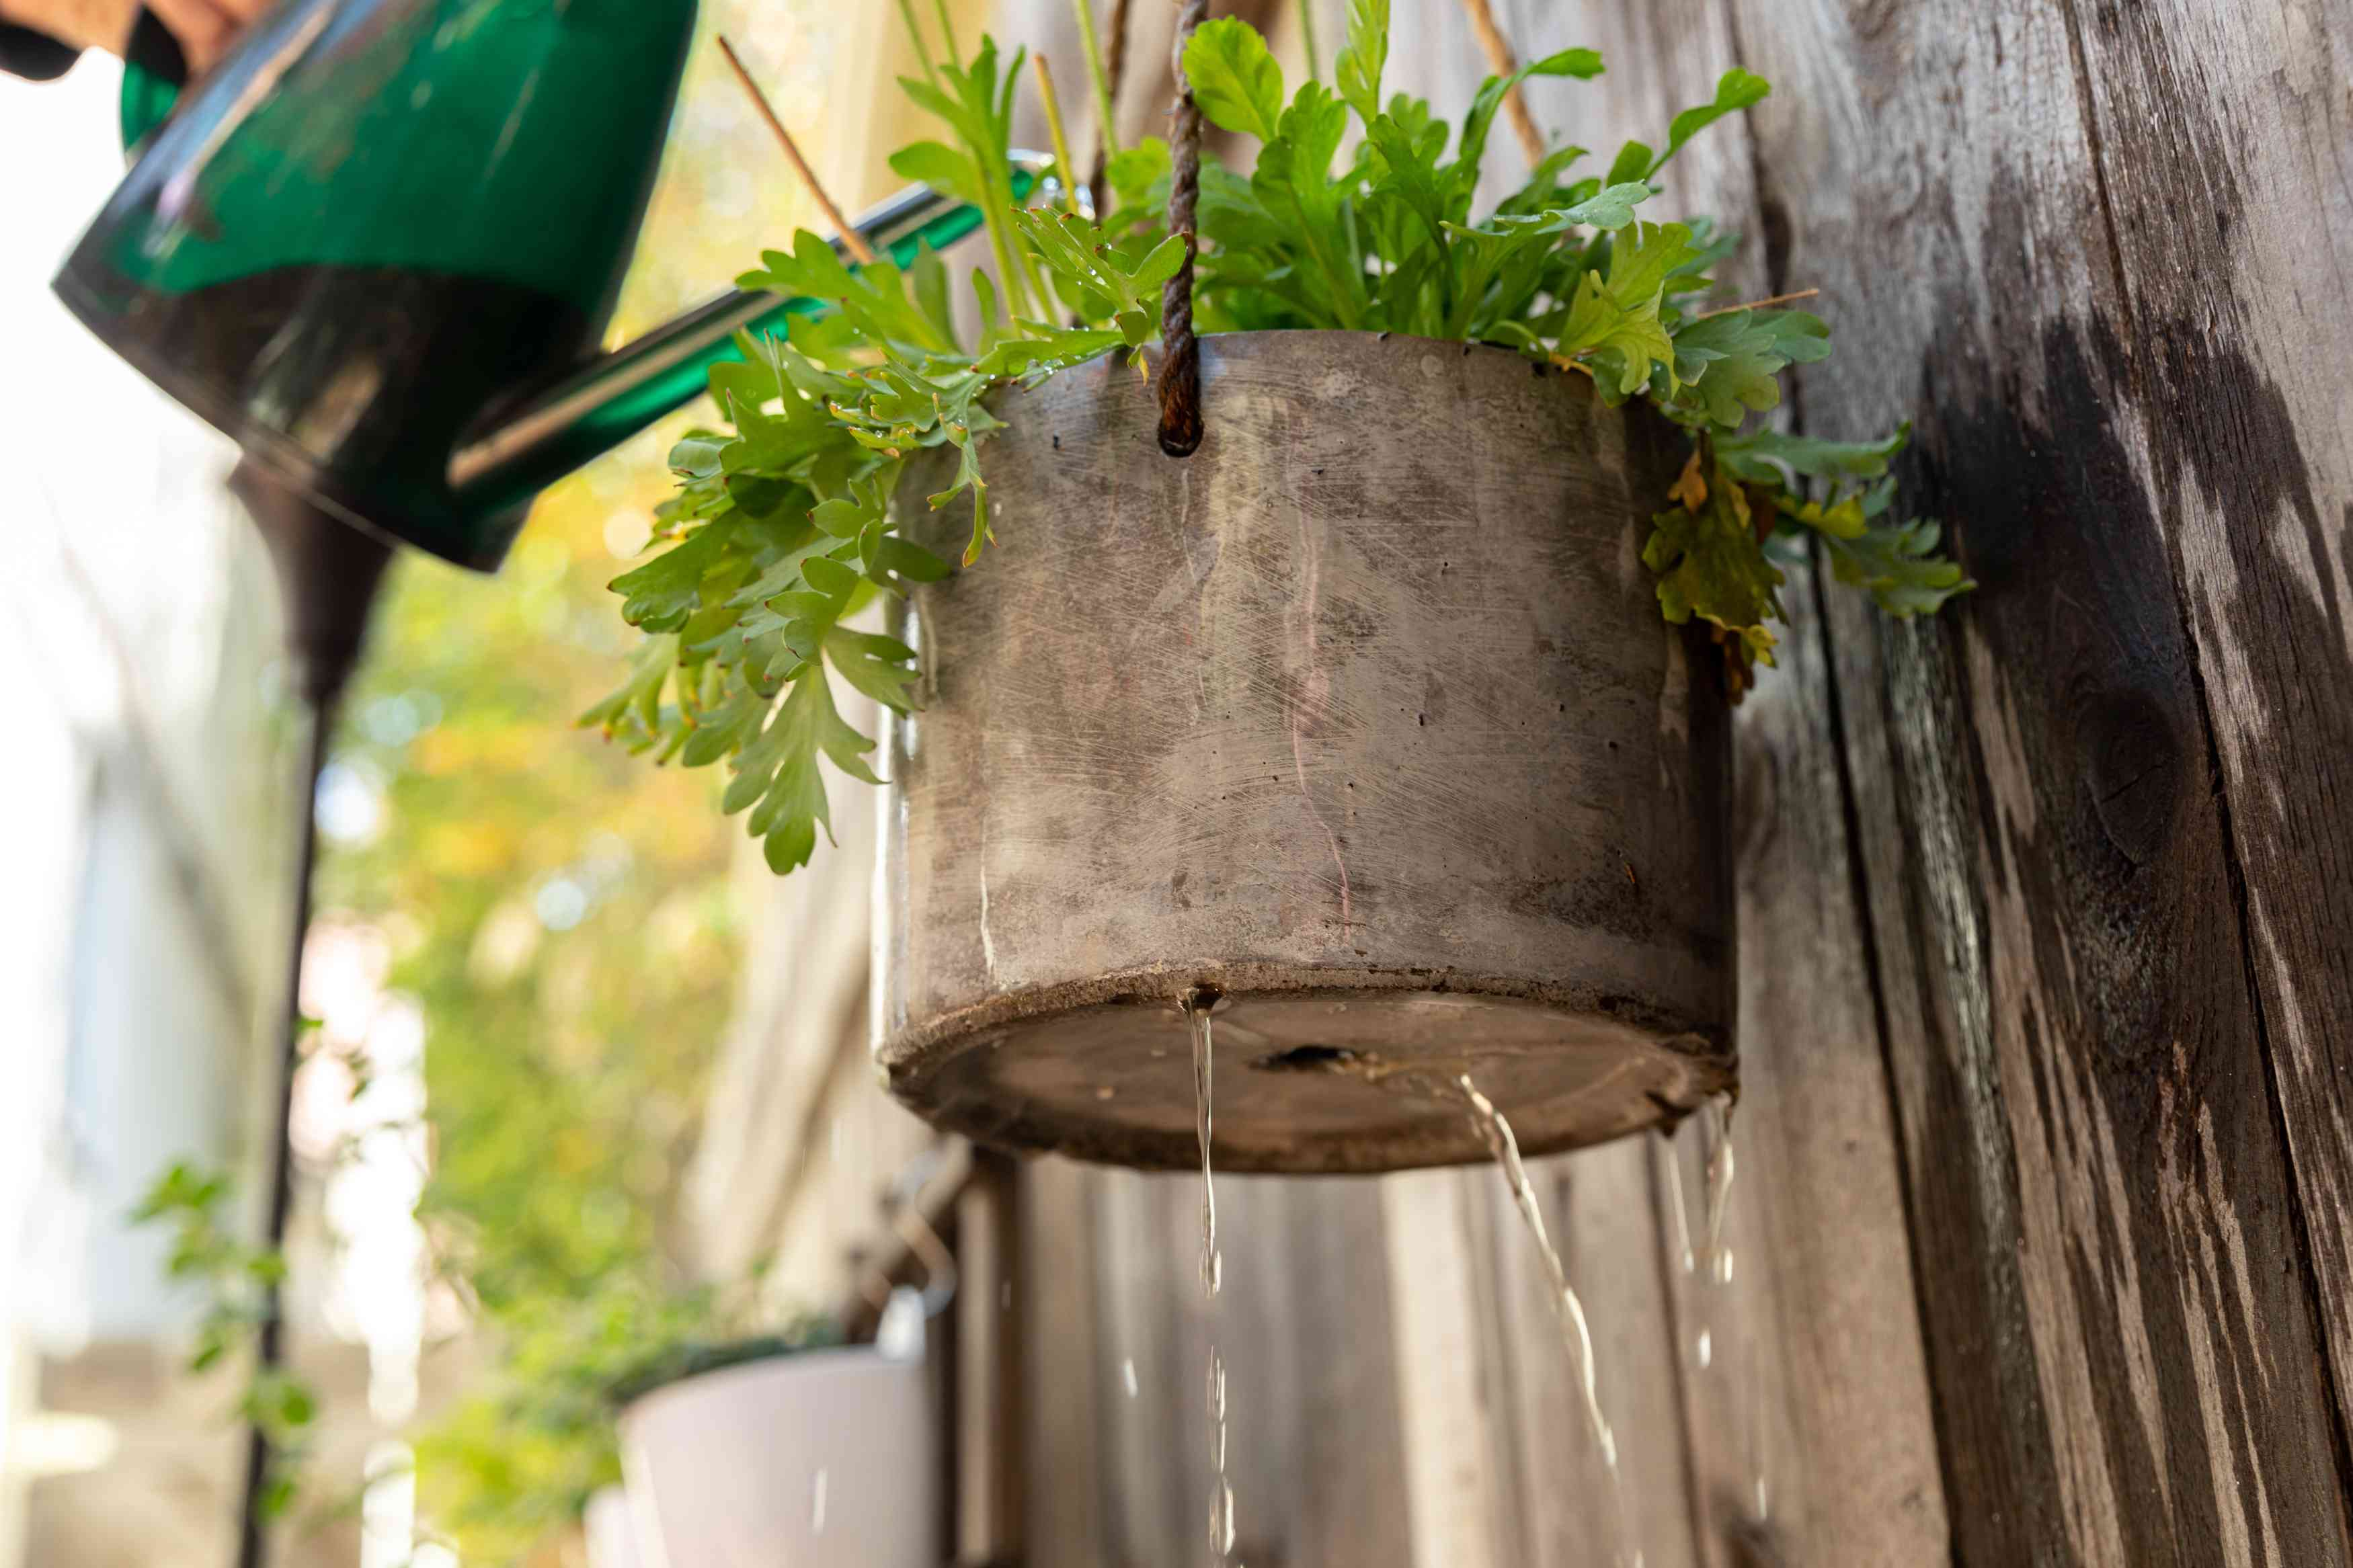 Plant in gray clay pot hanging on wooden wall with water dripping from bottom of pot